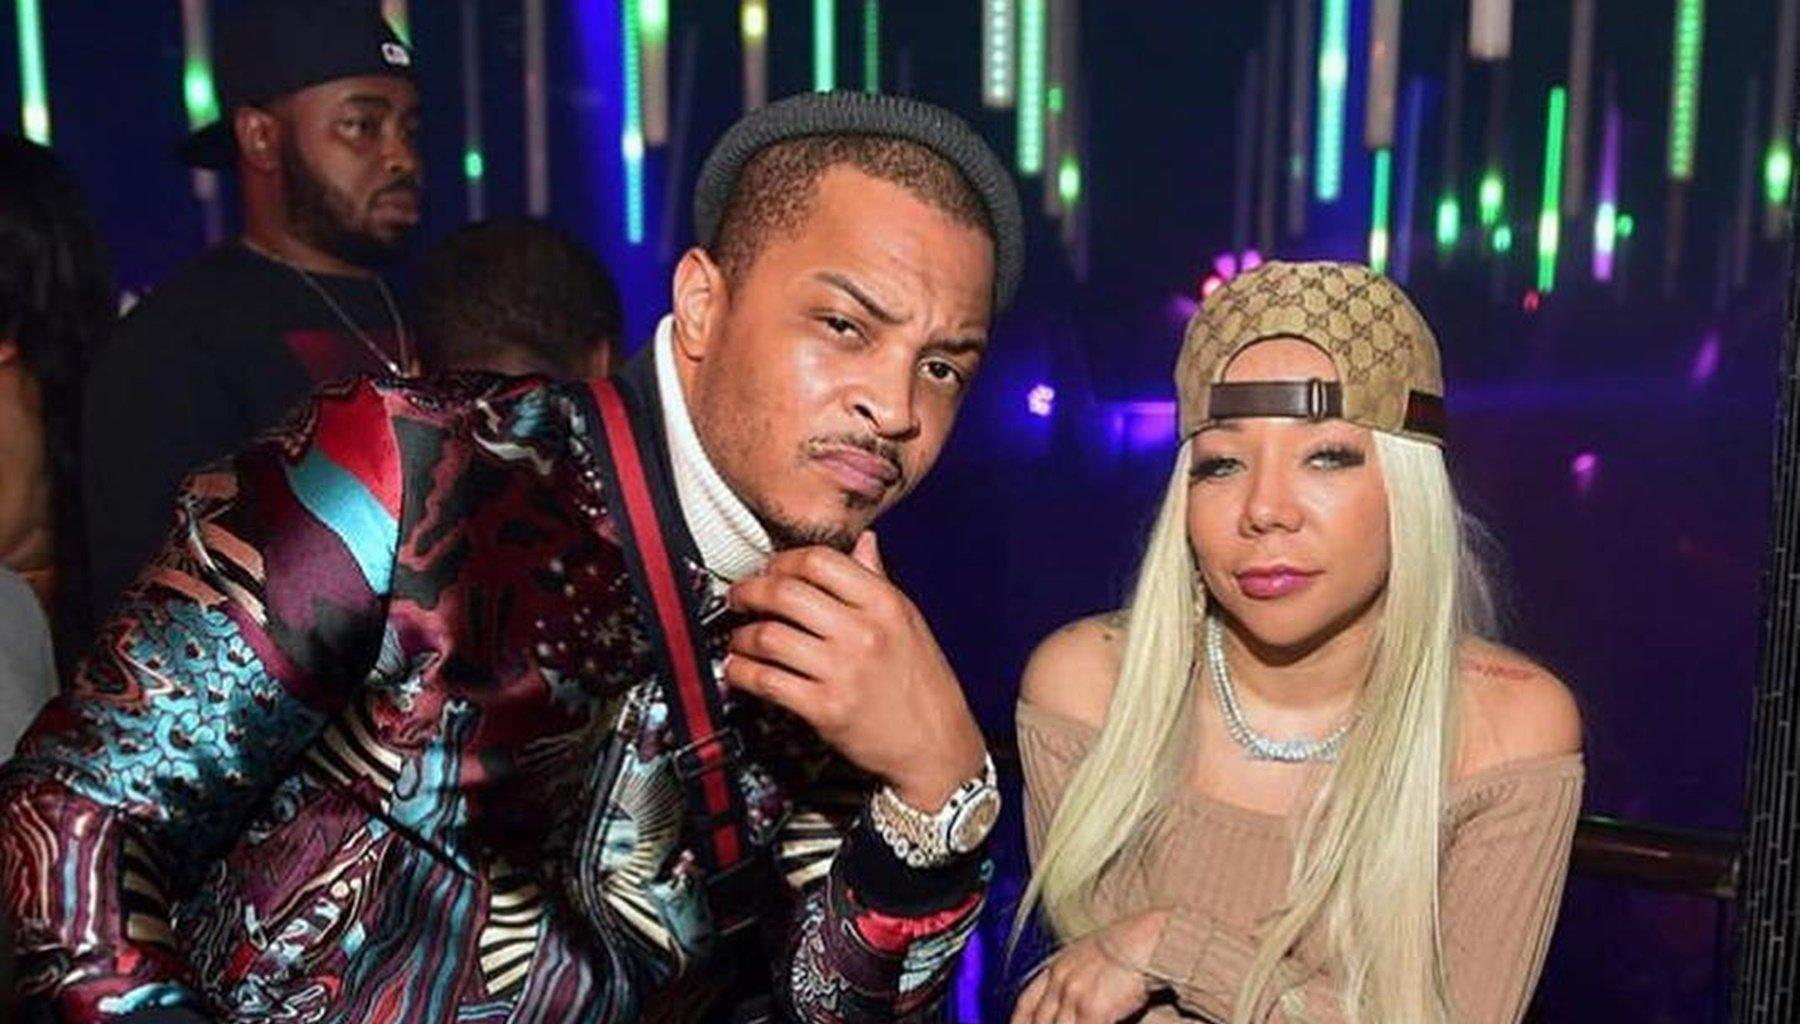 Tiny Harris Teases Her Fans With A Potential Pregnancy - T.I. And His Wife Seem To Have Some Baby Making Planned During Social Distancing